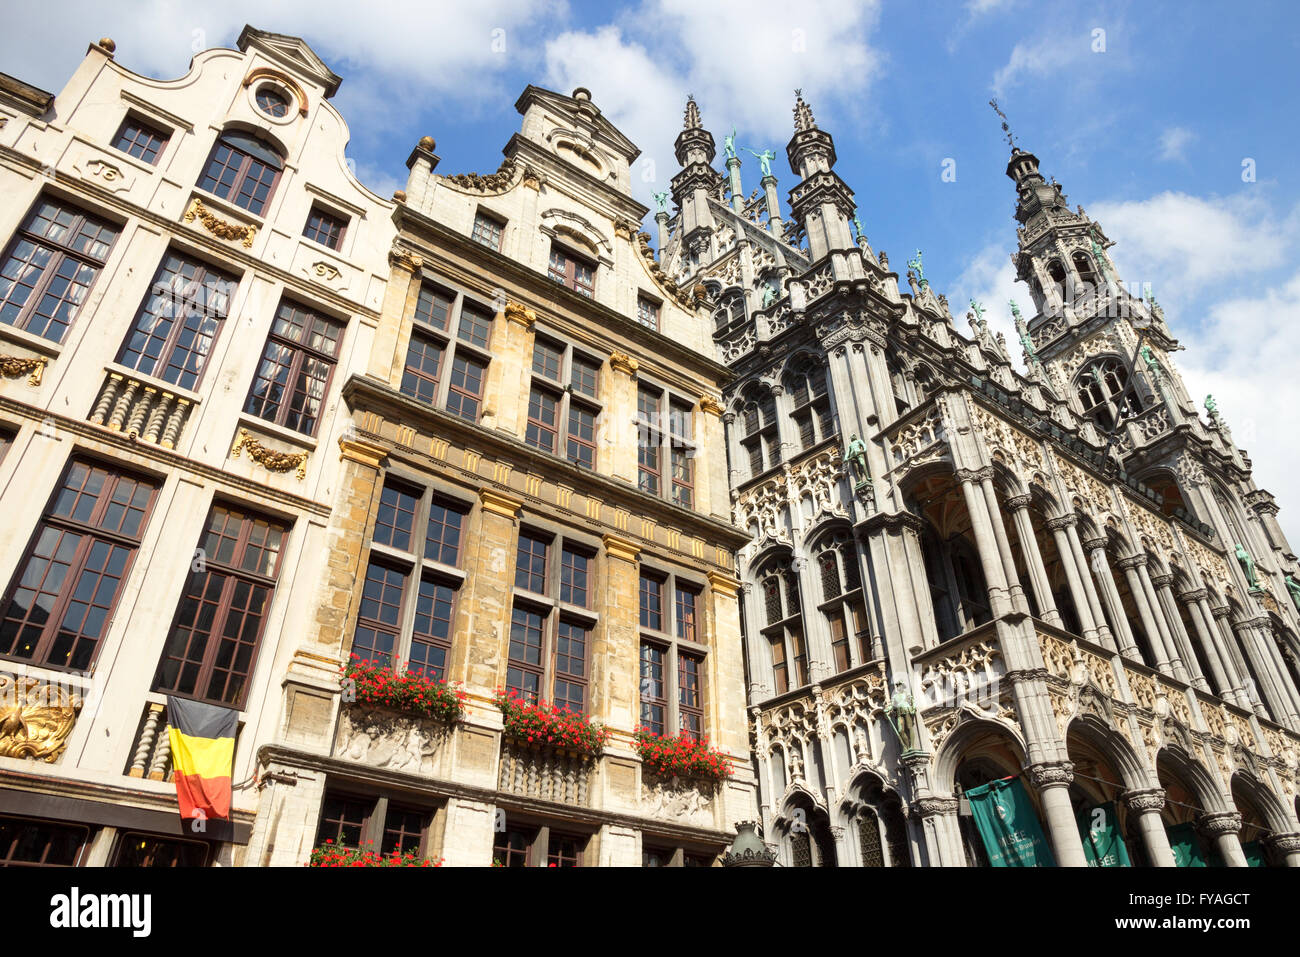 Facades on the famous Grand Place (Grote Markt) - the central square of Brussels. Stock Photo